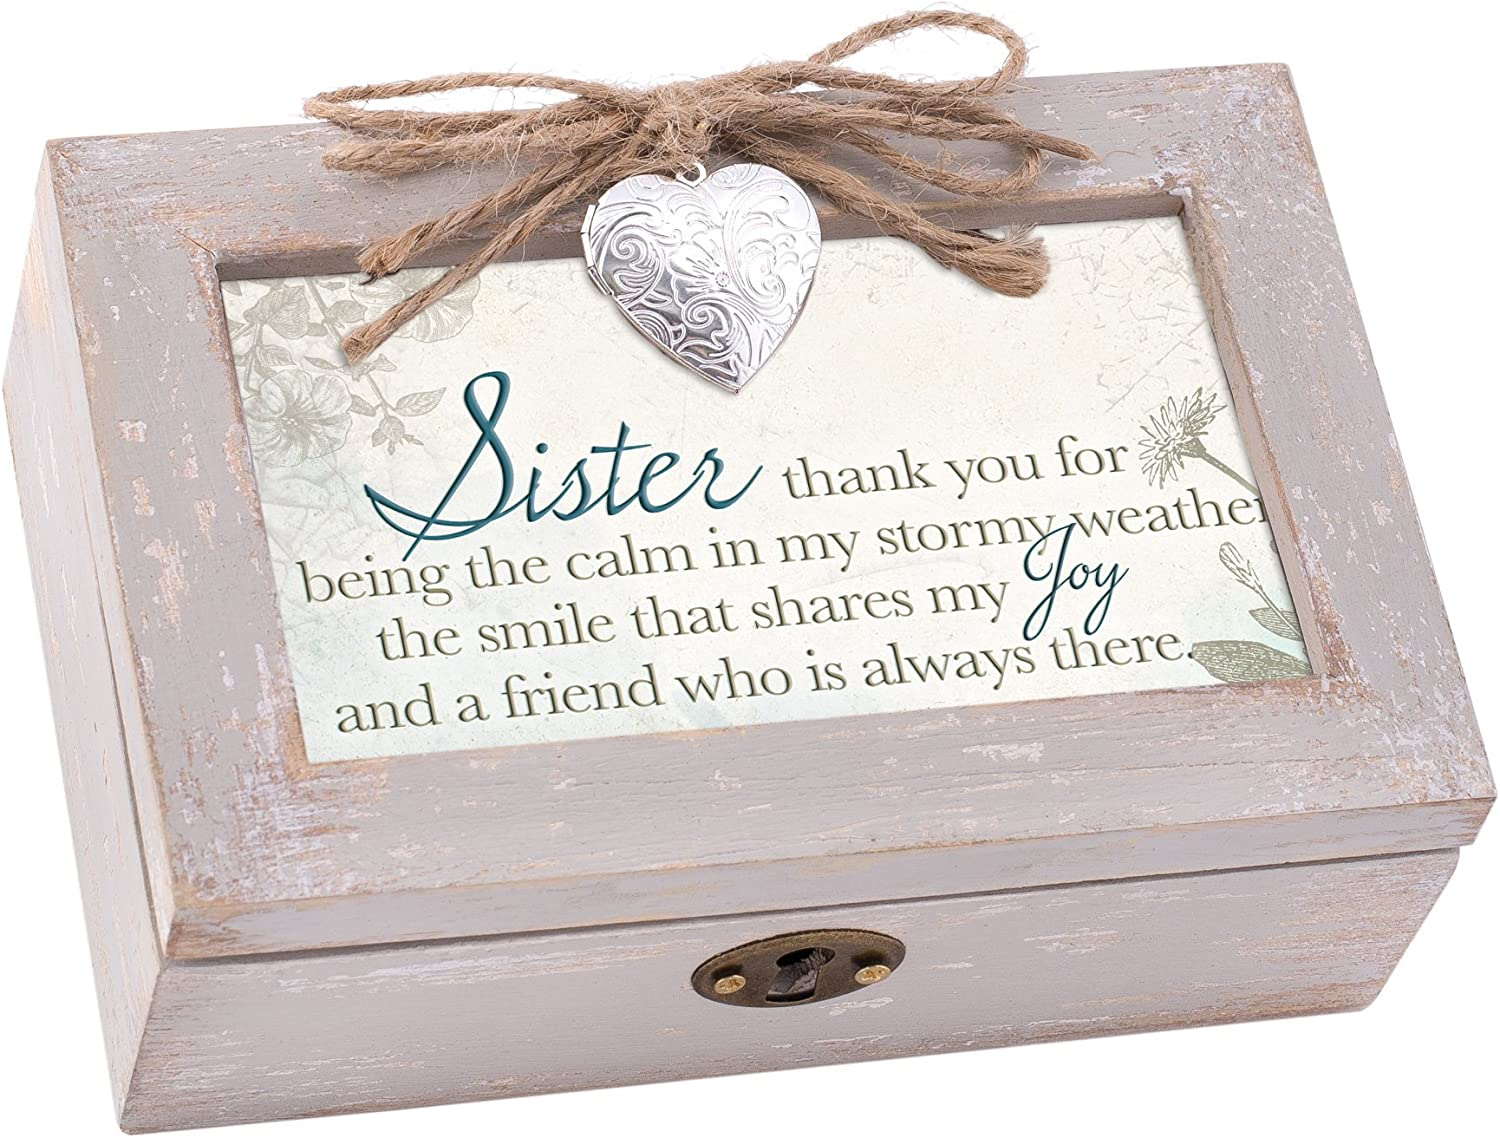 Cottage Garden Sister The Calm in My Stormy Weather Natural Taupe Jewelry Music Box Plays You Light Up My Life